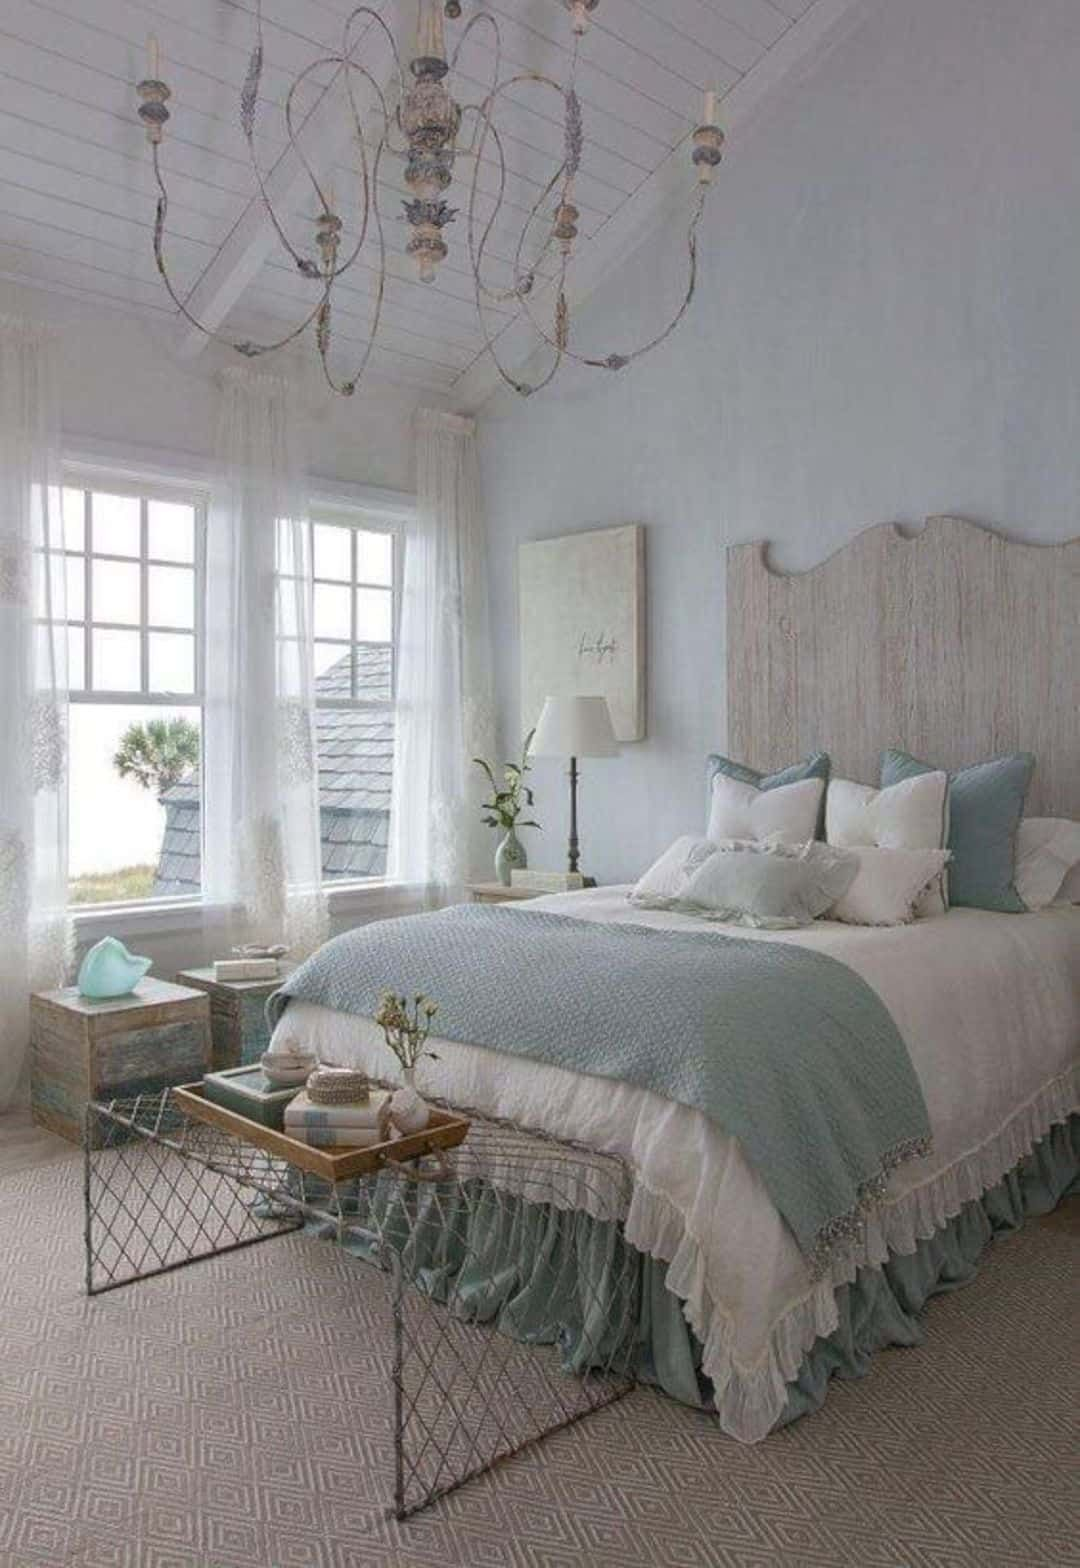 34 Amazing French Country Bedrooms Design Ideas - HMDCRTN